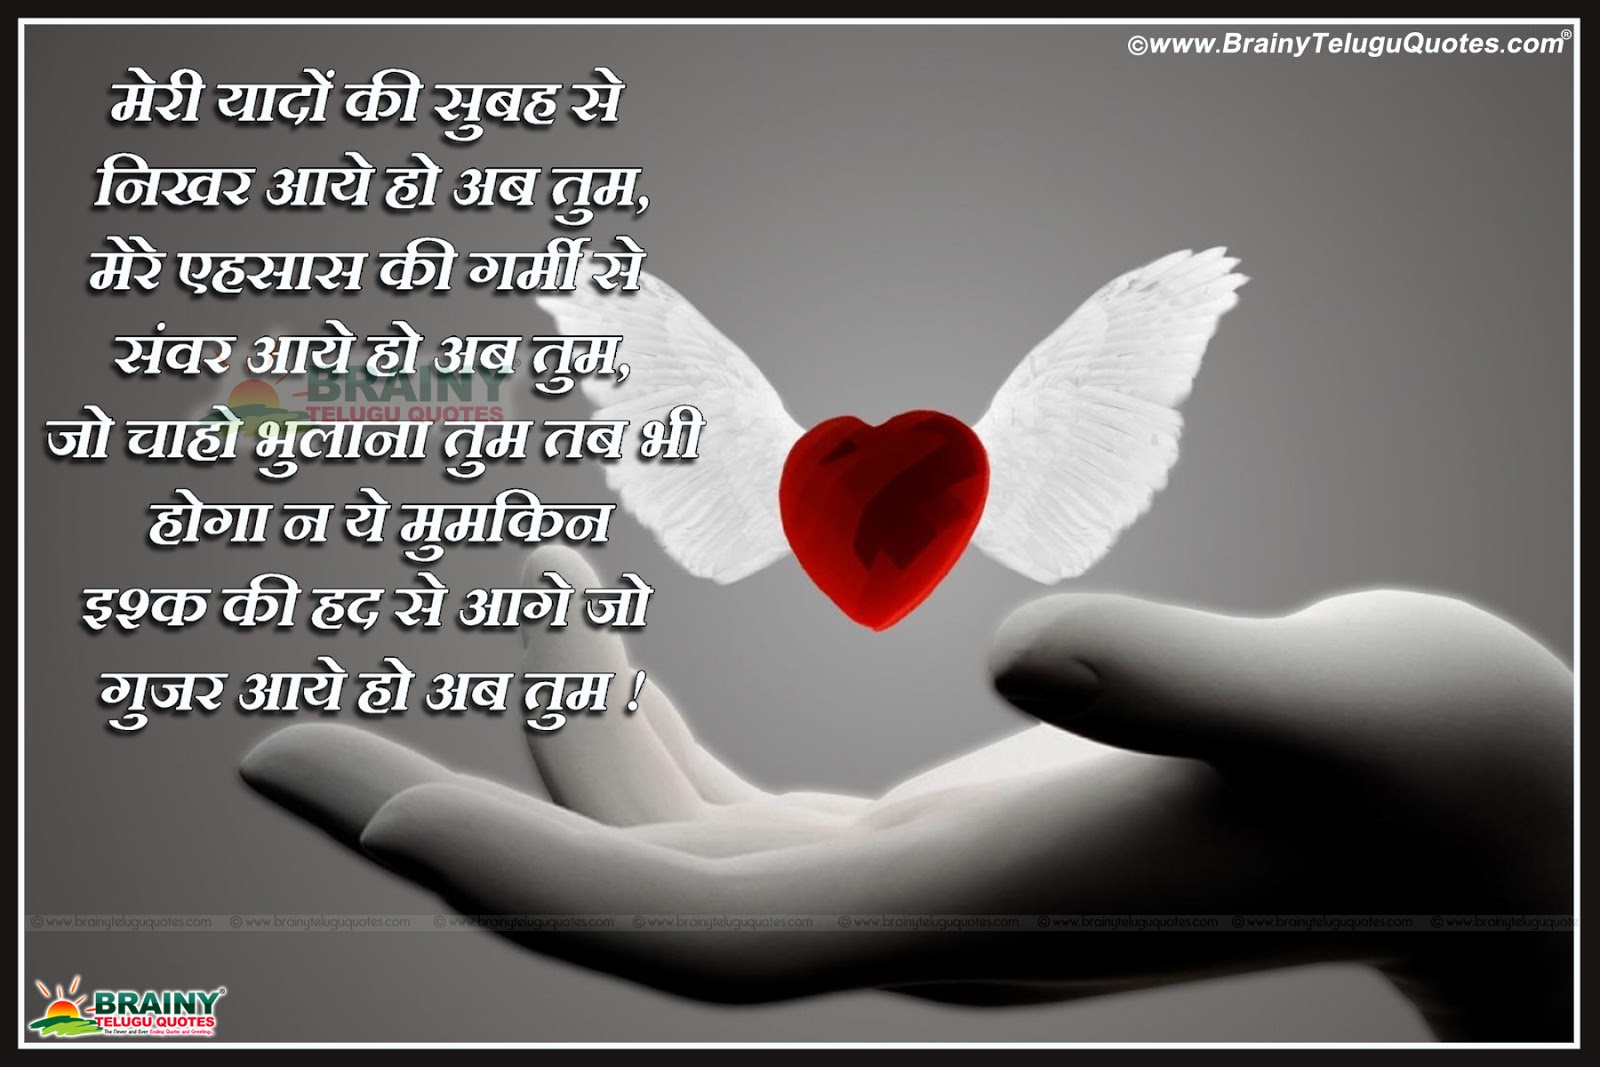 Best Love shayari in hindi with wallpapers Best hindi love shayari images Love shayari in hindi with deep kisses wallpapers pyar shayari in hindi heart